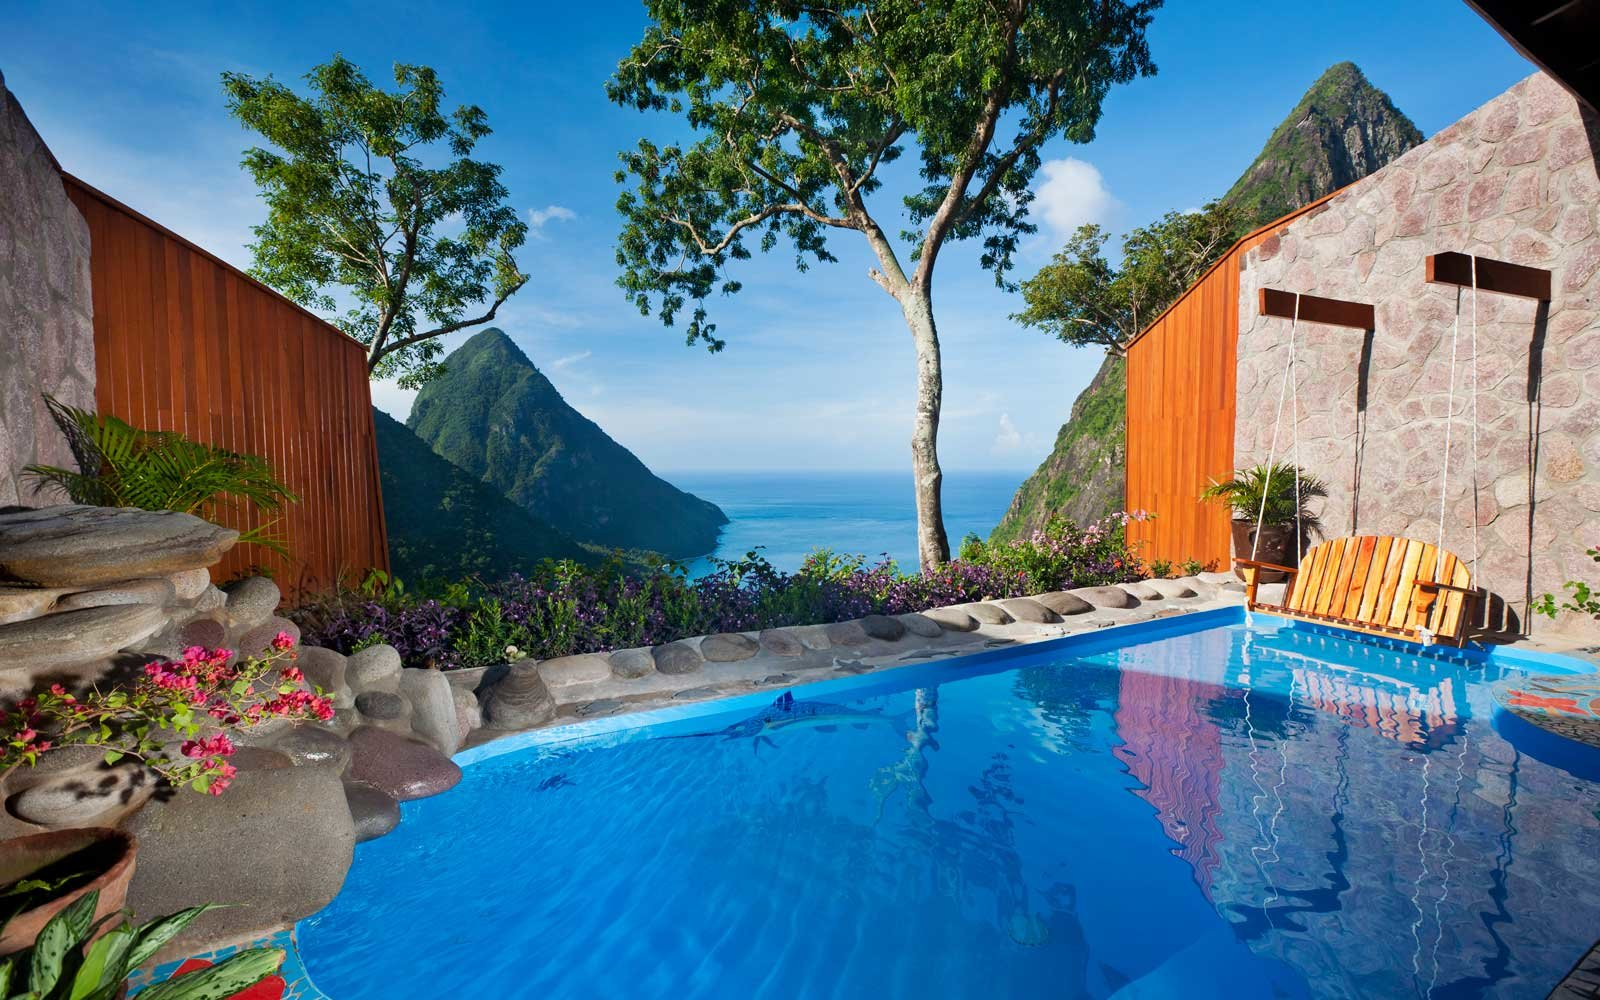 The Best All-Inclusive St. Lucia Resorts | Travel + Leisure